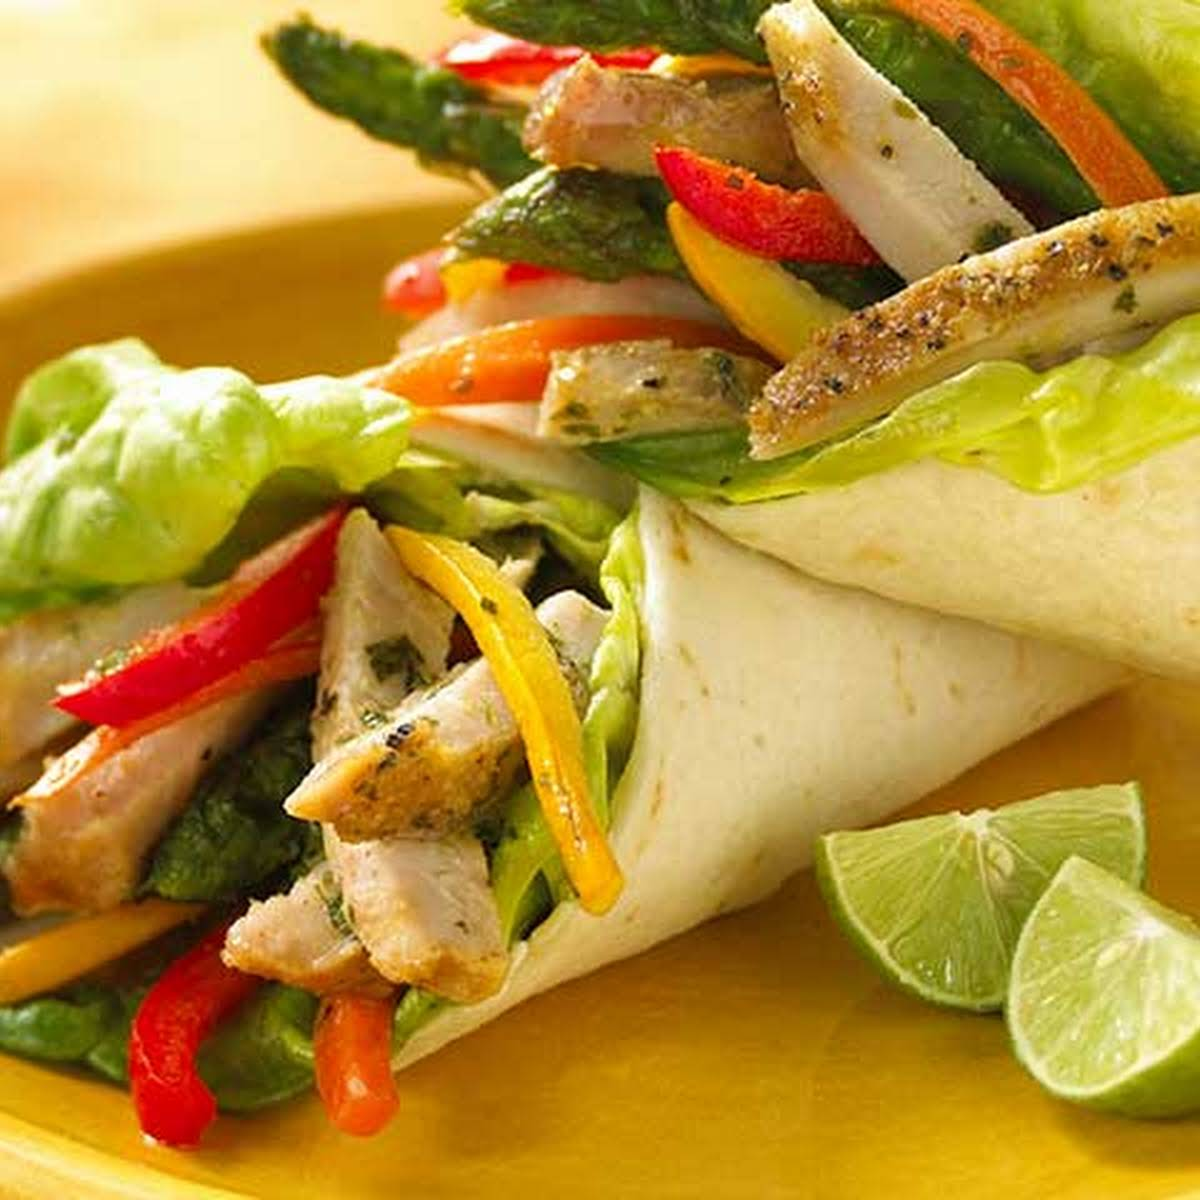 Pork Loin Tortilla Wraps  similar to Roasted Vegetables and Citrus Mint Dressing